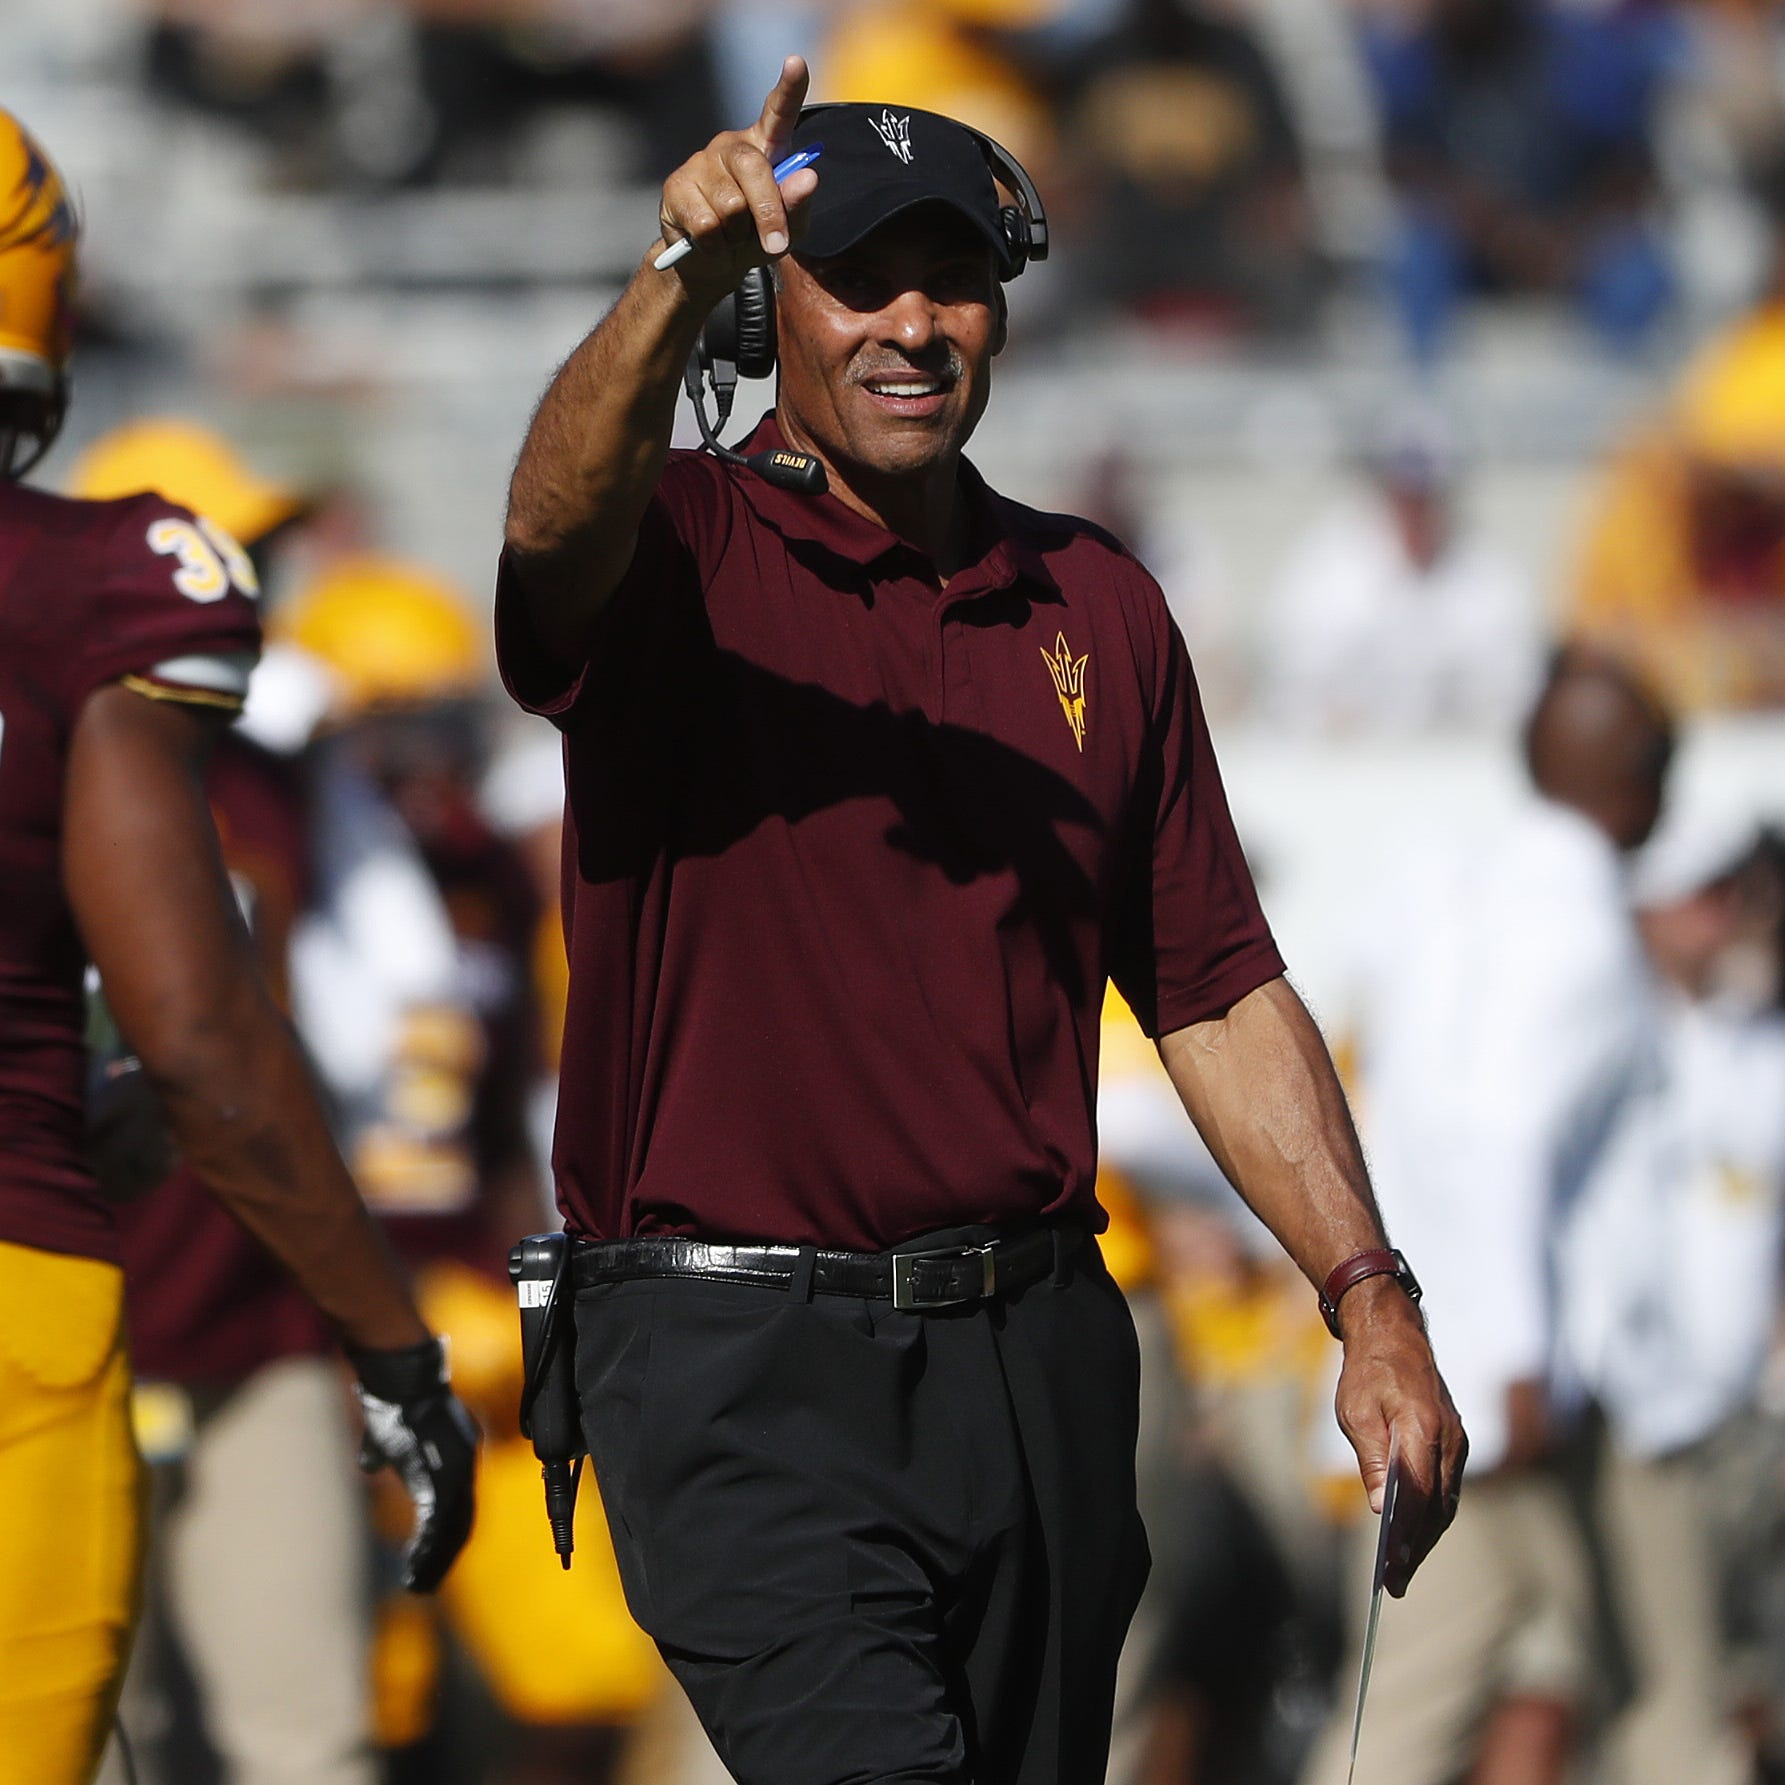 ASU could clinch the Pac-12 South on Saturday, here's how